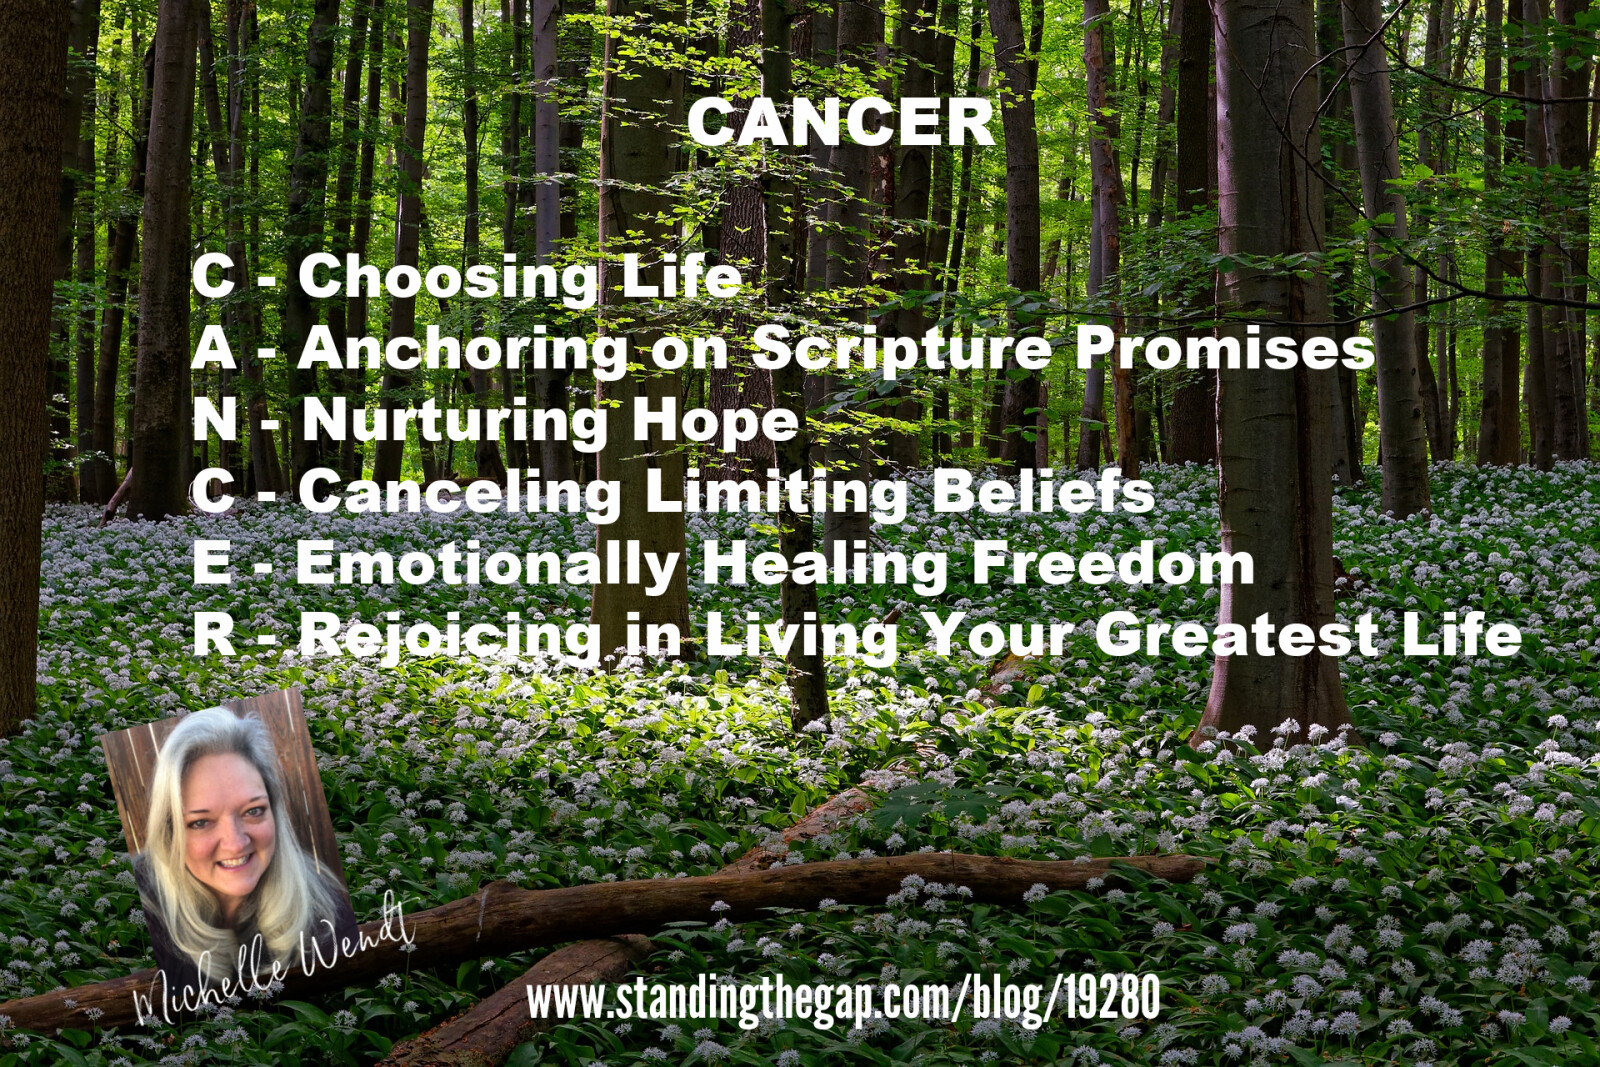 Acrostics Challenge for my book on Cancer Hope and Support when Modern Medicine is Not Enough.